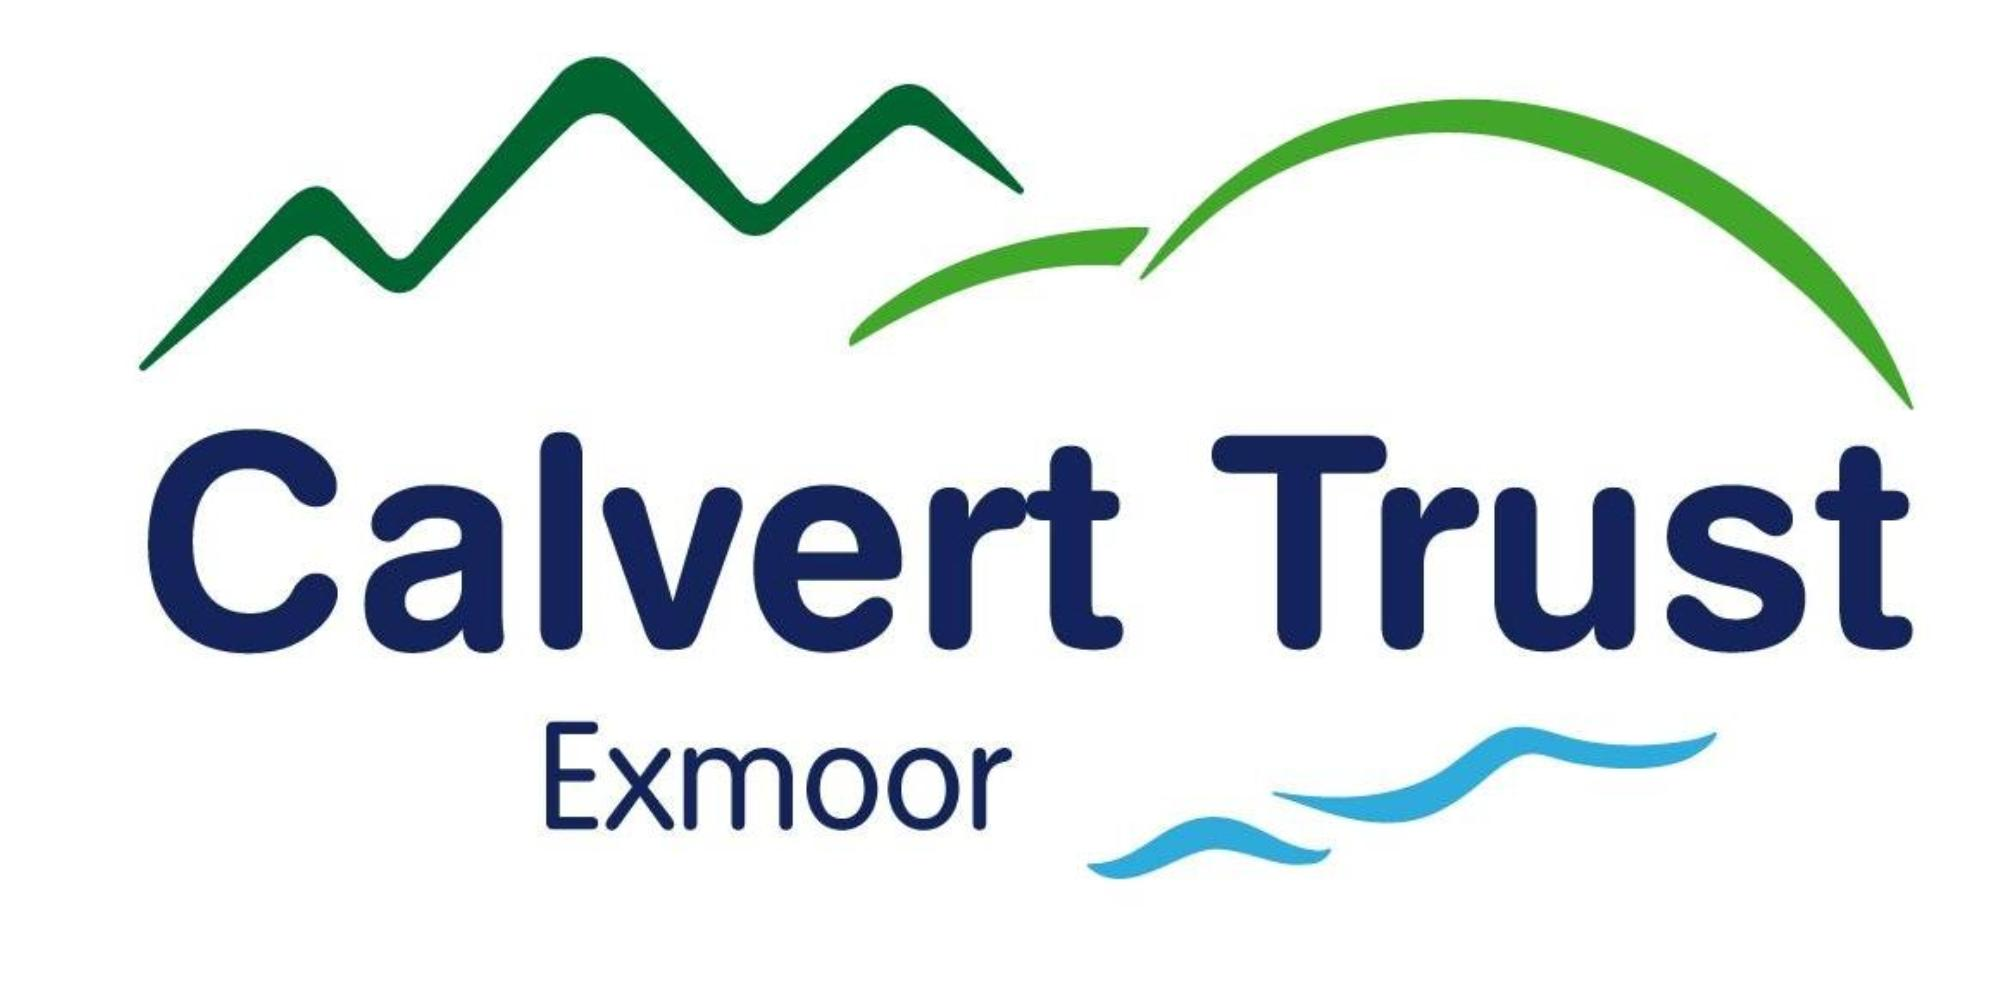 Copy of Copy of the Calvert Trust Exmoor